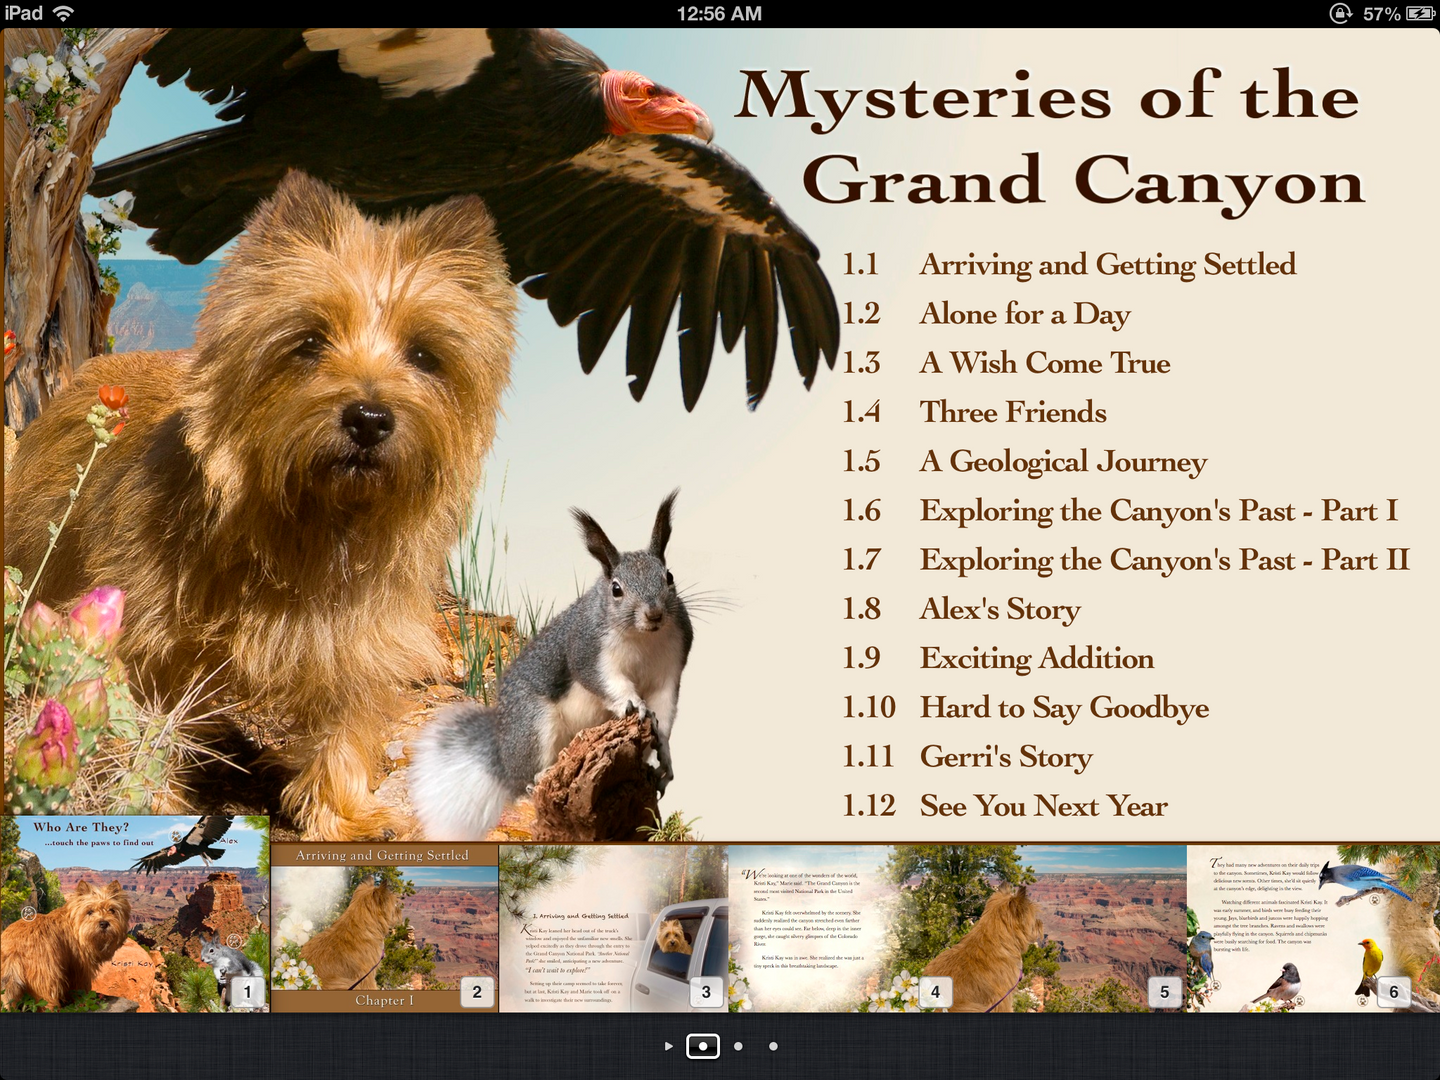 Mysteries of the Grand Canyon chapter page.PNG